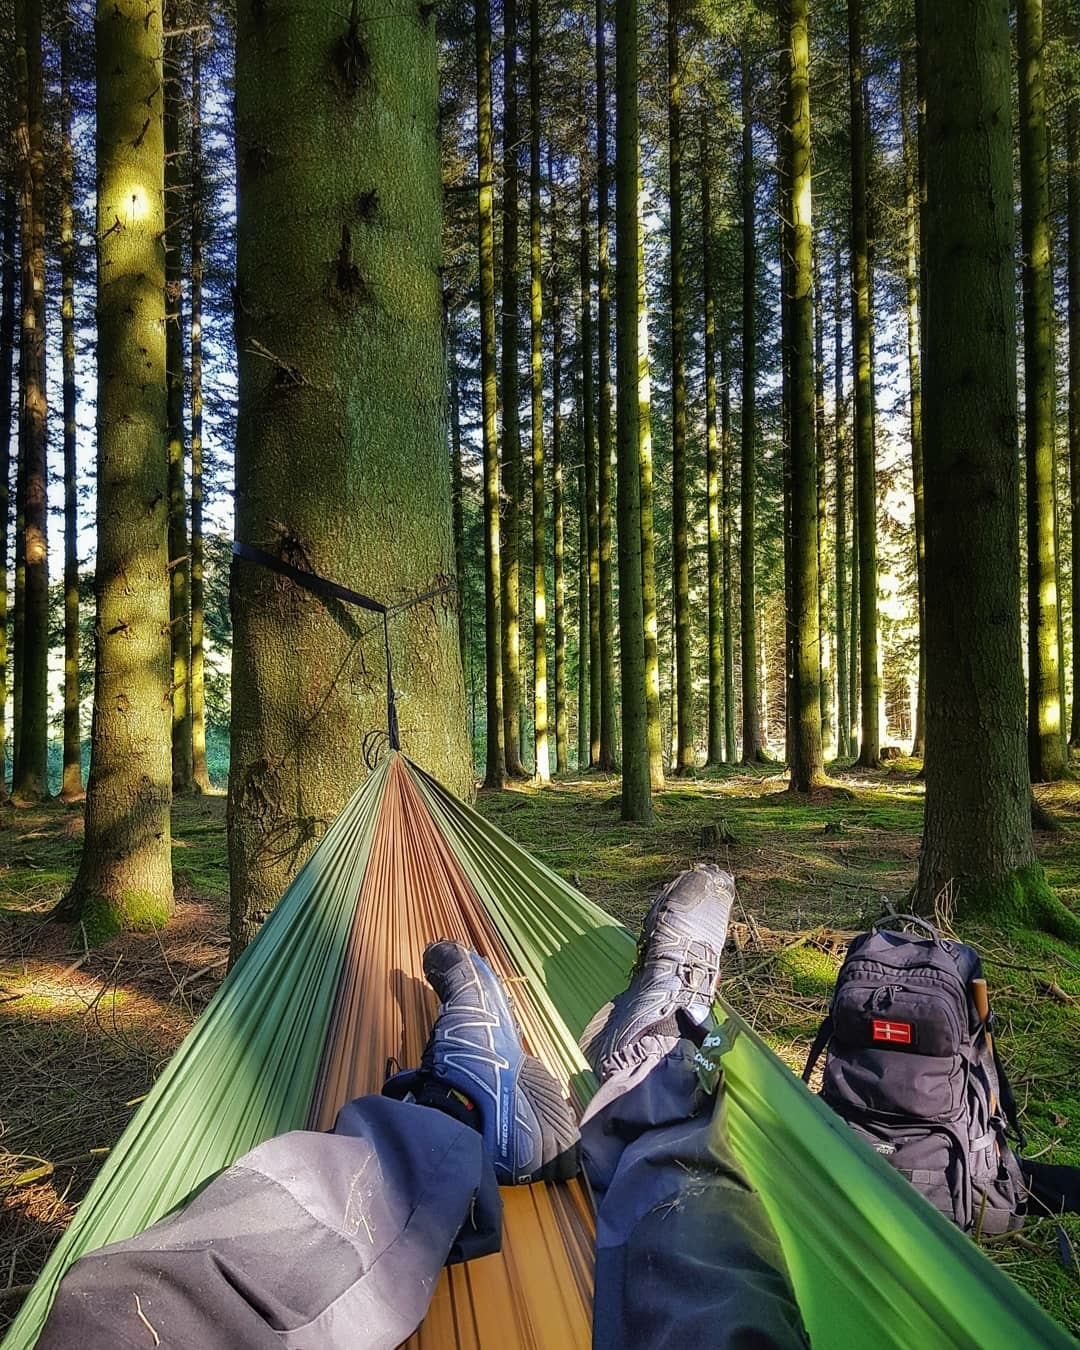 man relaxing on hammock in forest